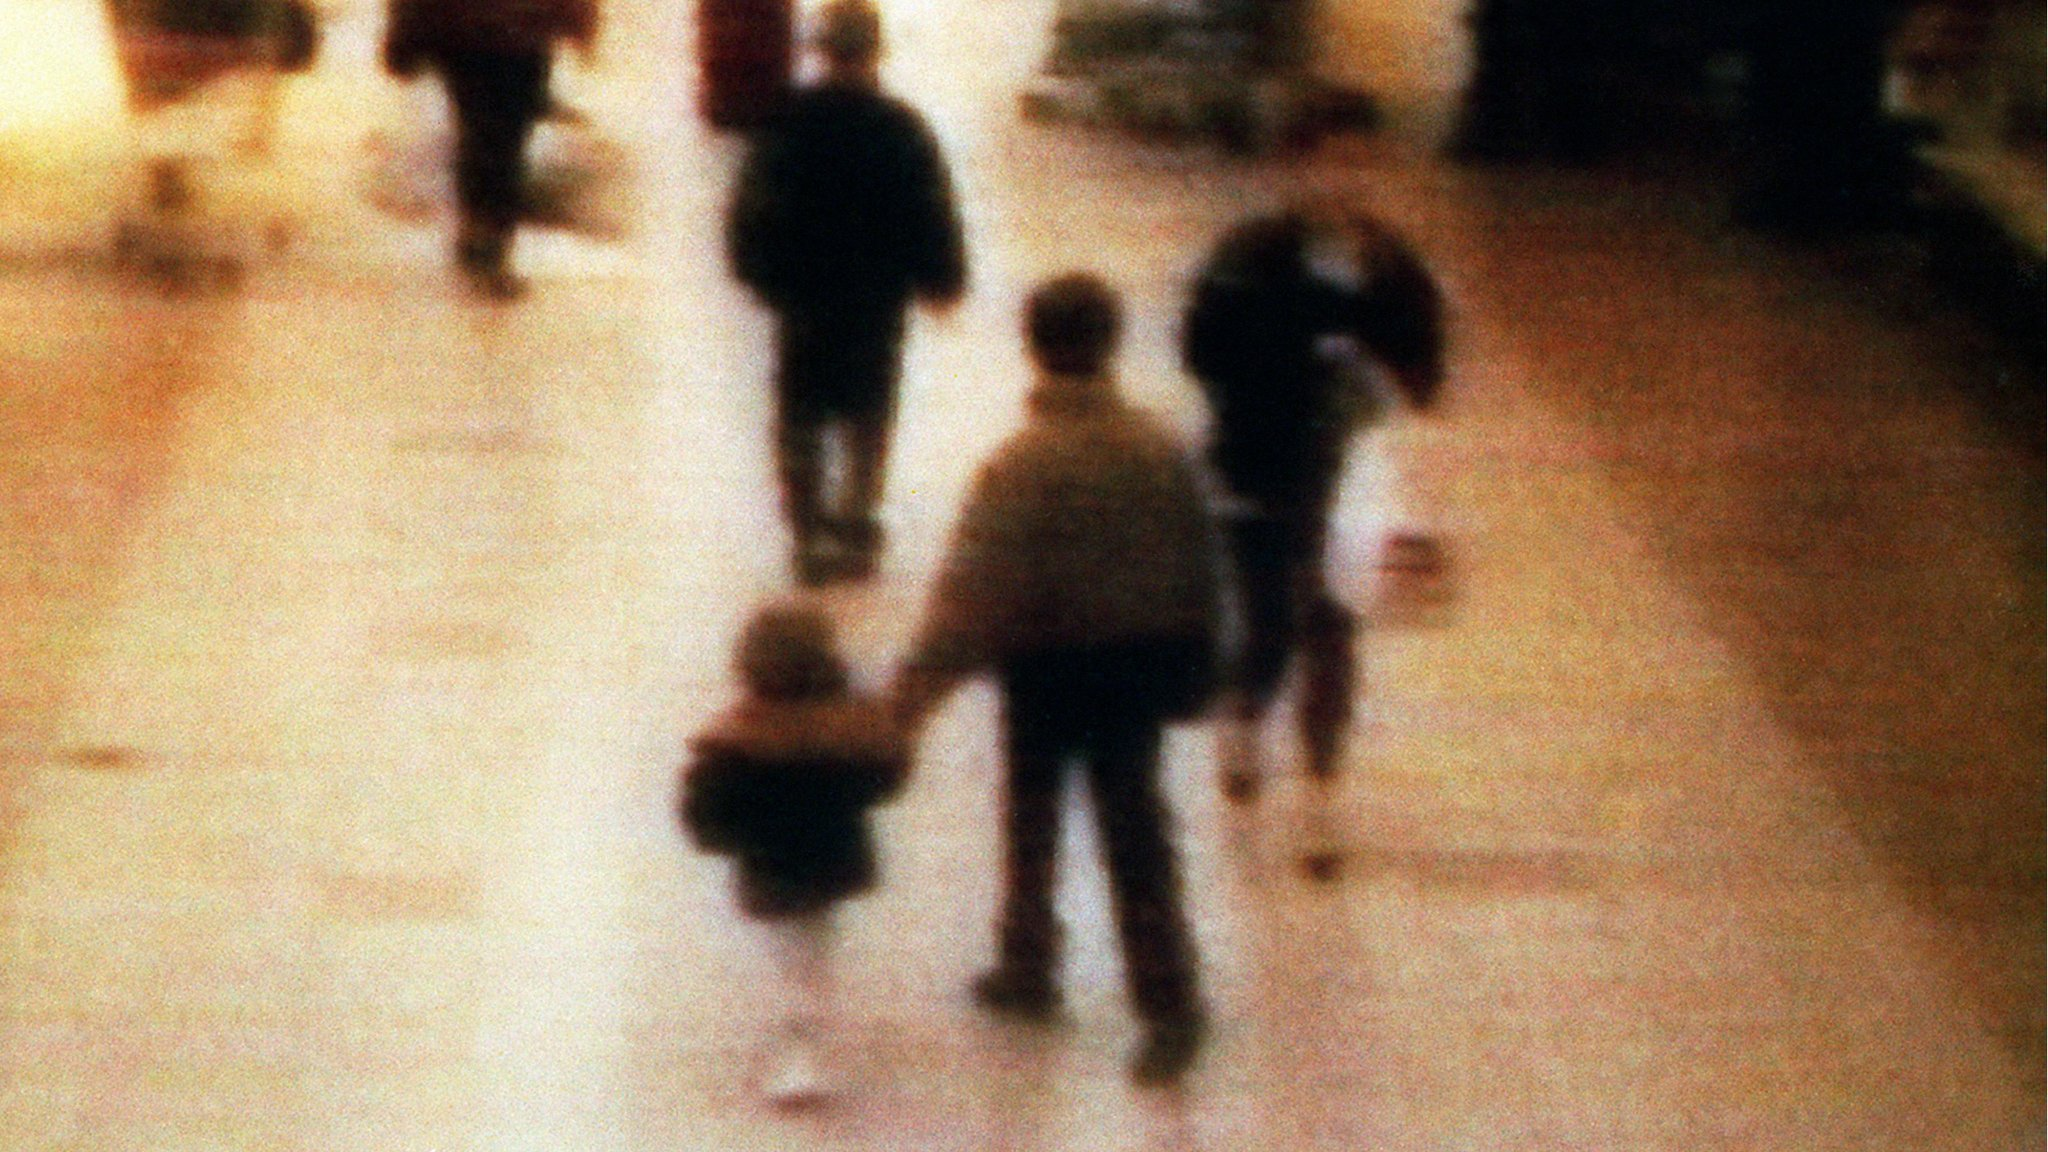 CCTV footage showed Bulger being led away